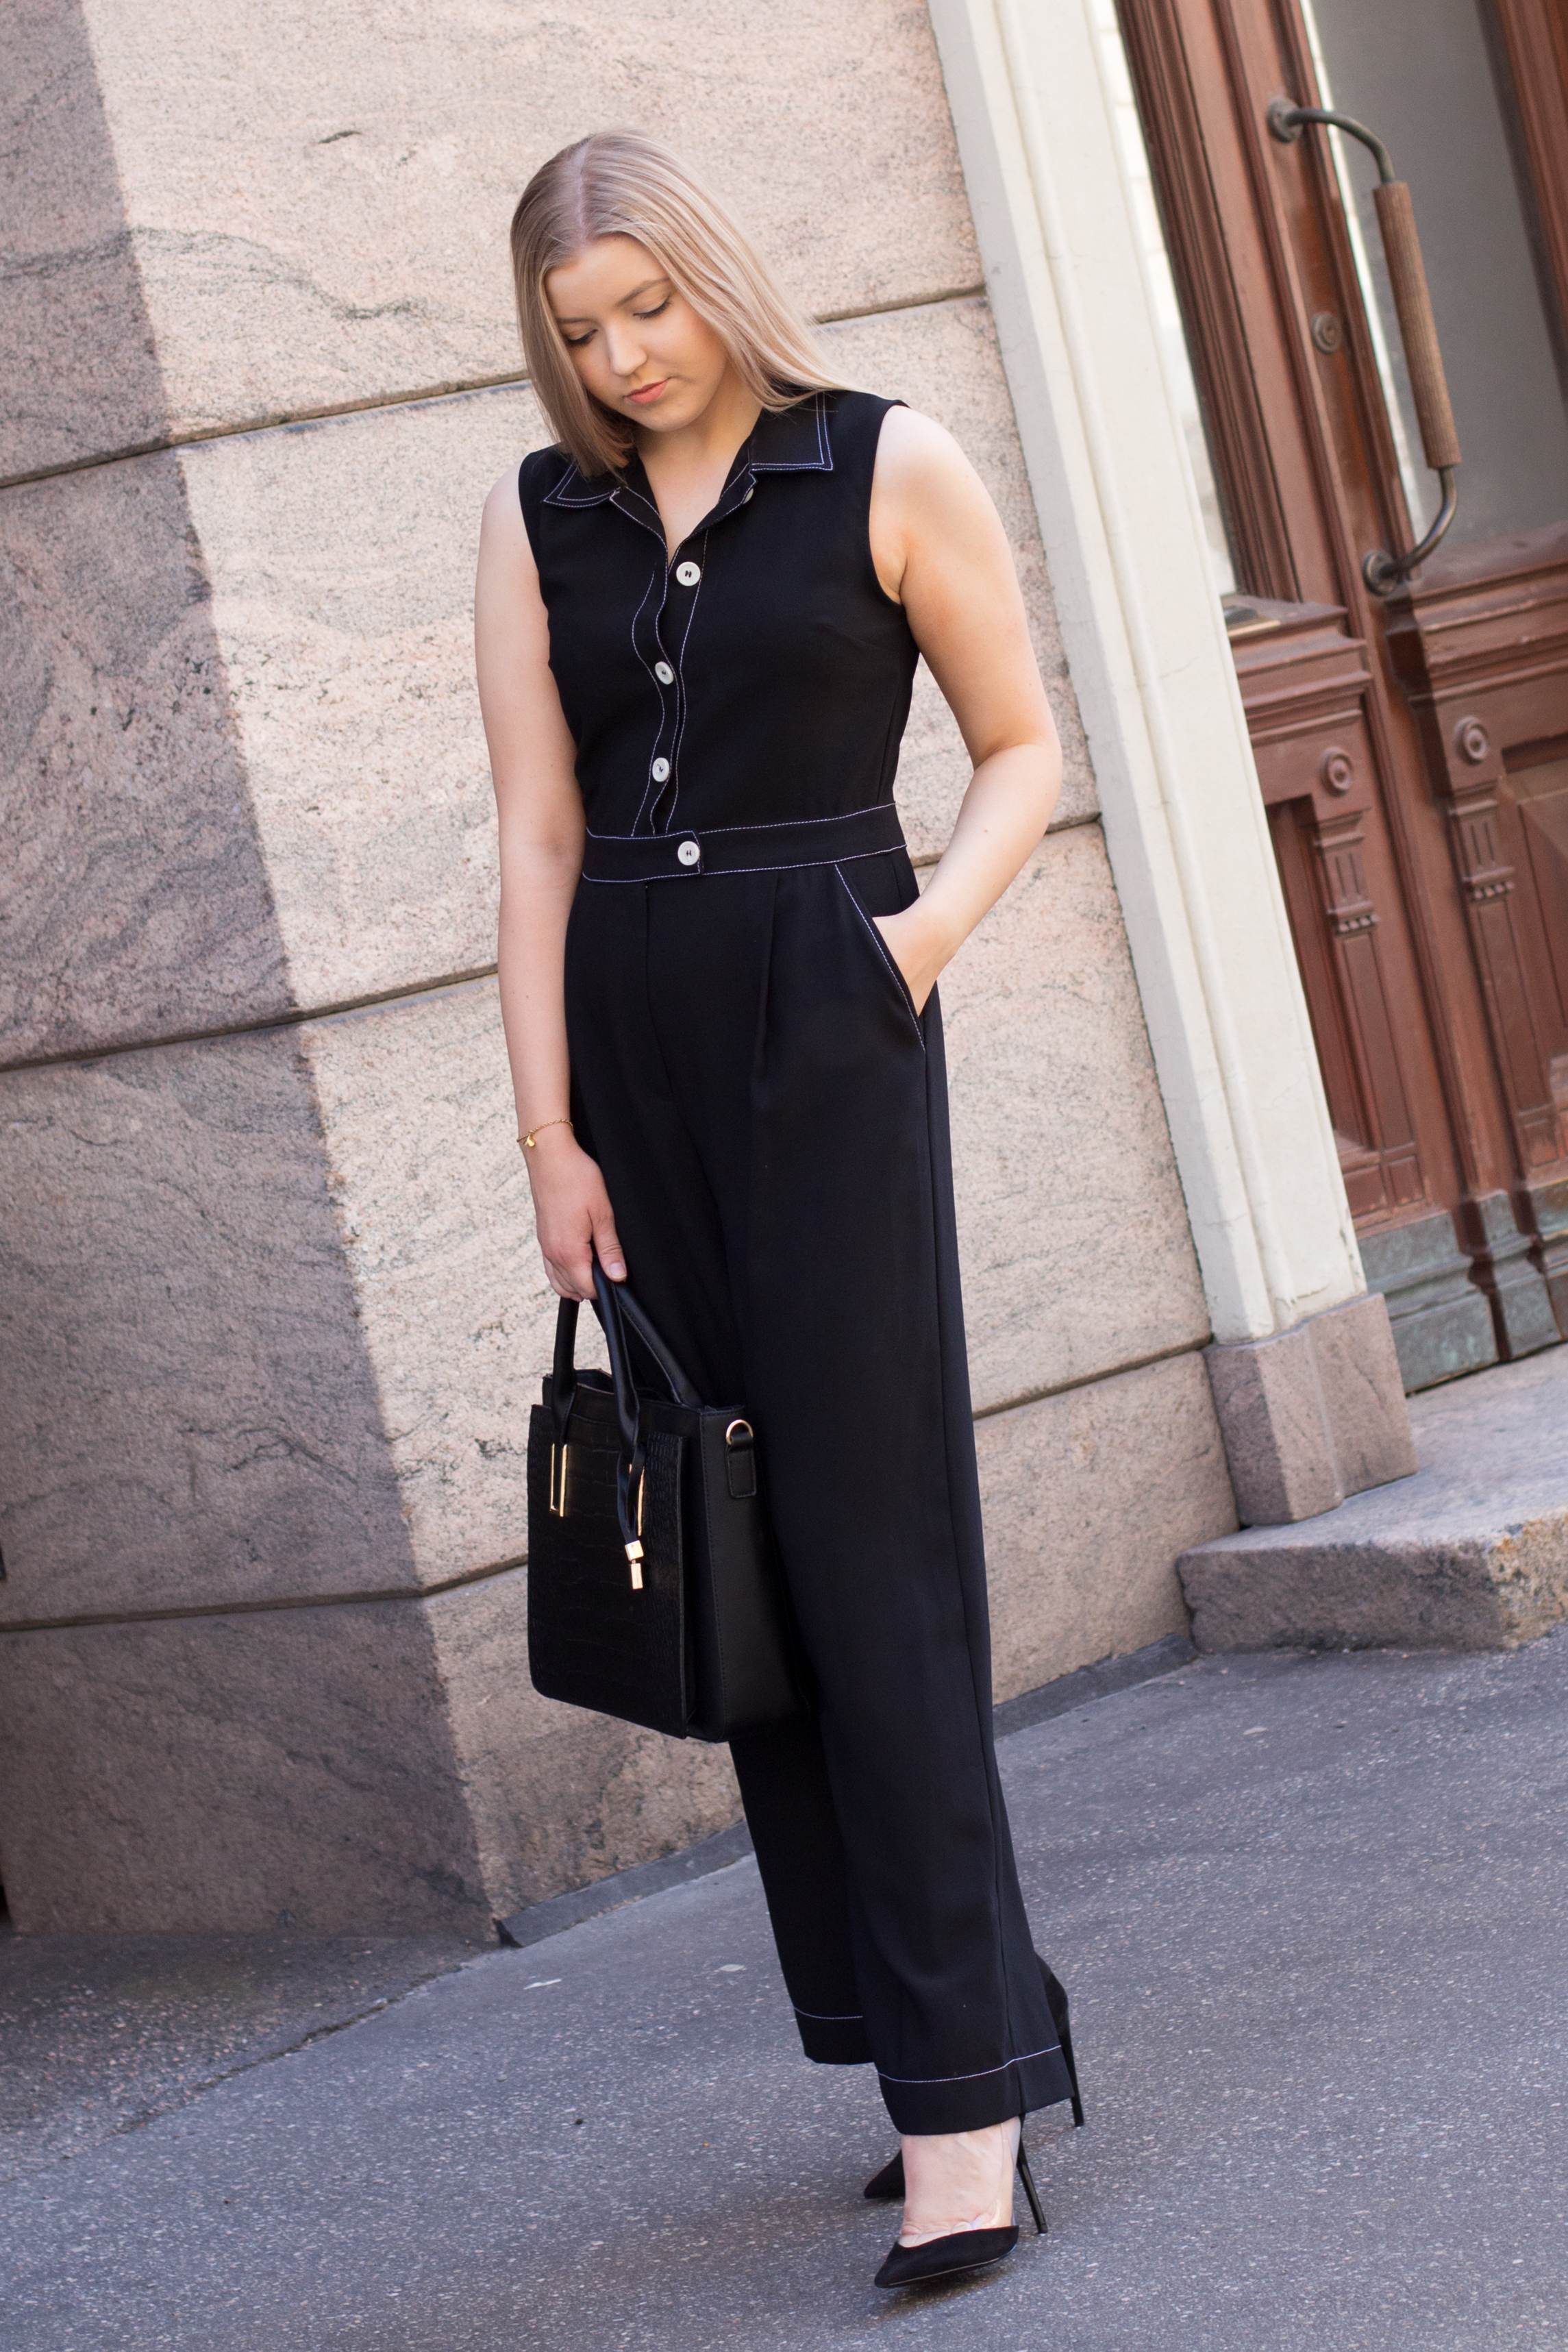 Black pantsuit (18 of 24).jpg